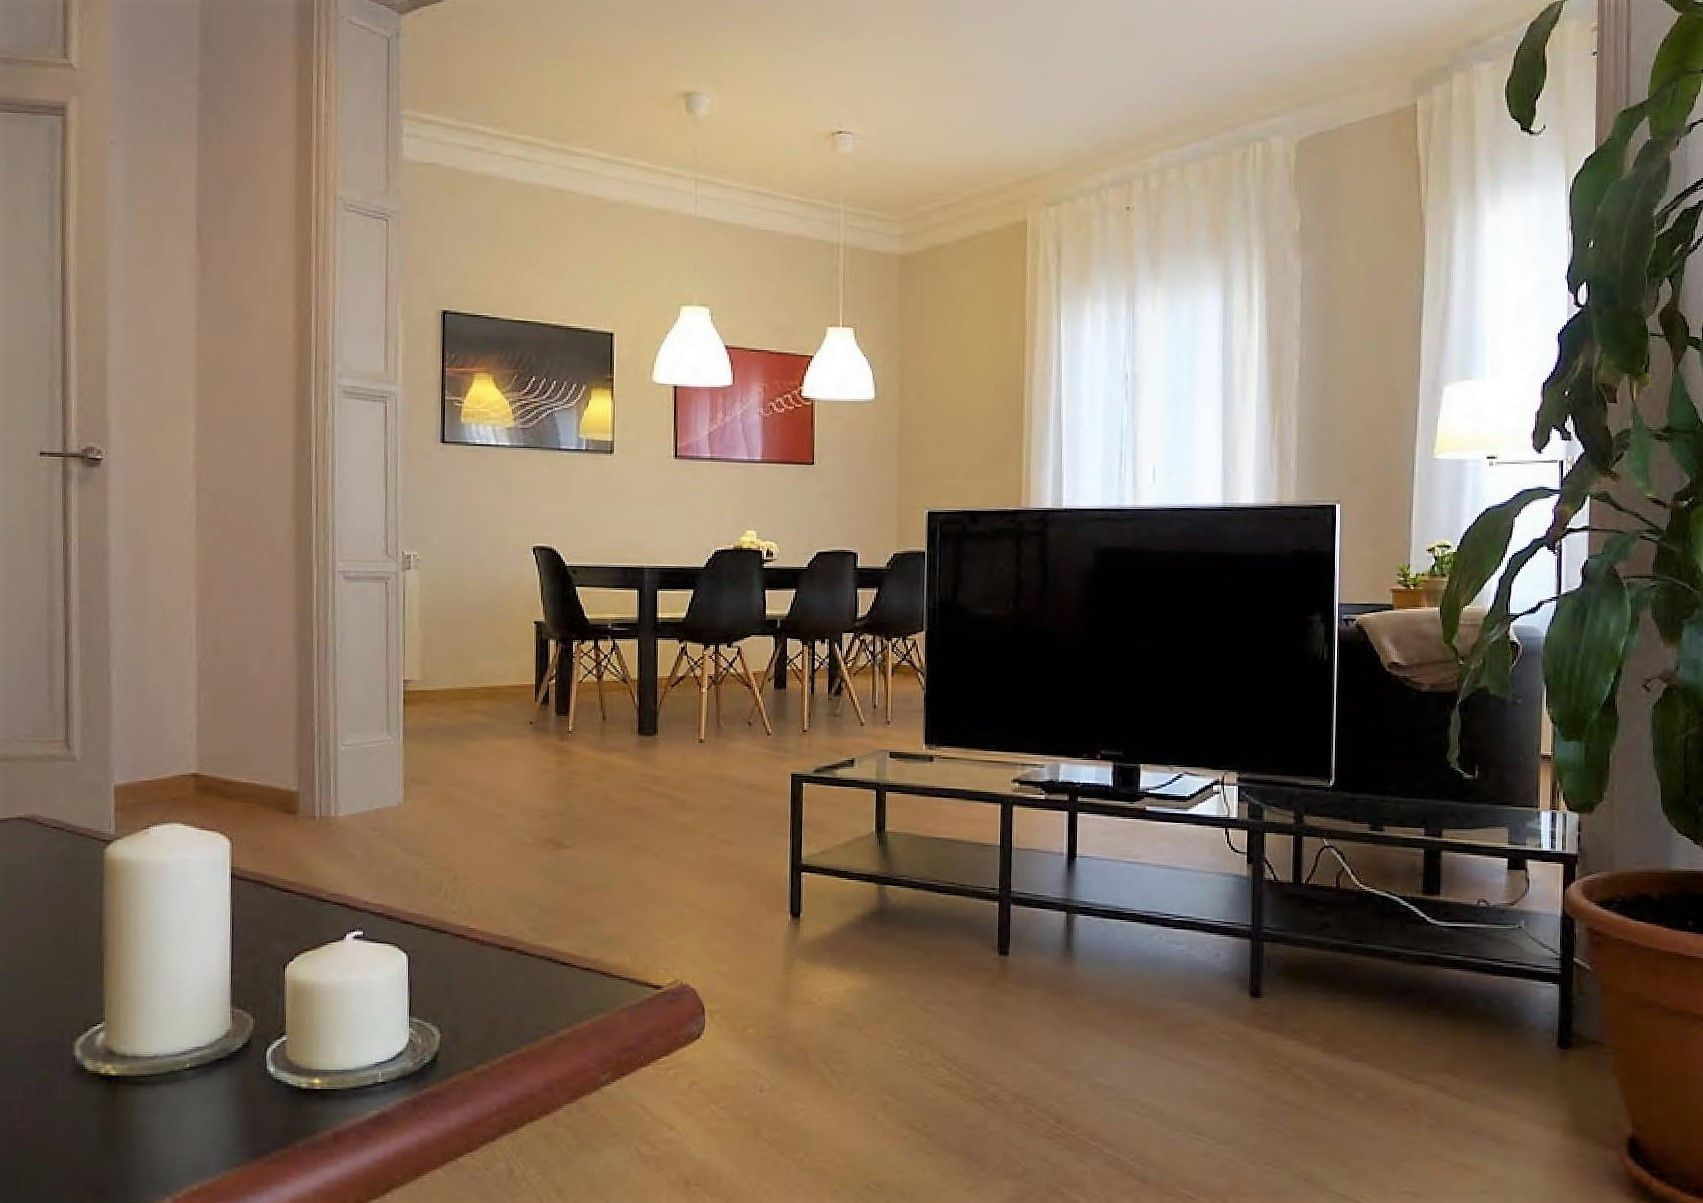 Large Sant Gervasi Apartment (ESADE and IESE) 4 Bedrooms and 4 Bathrooms up to 8